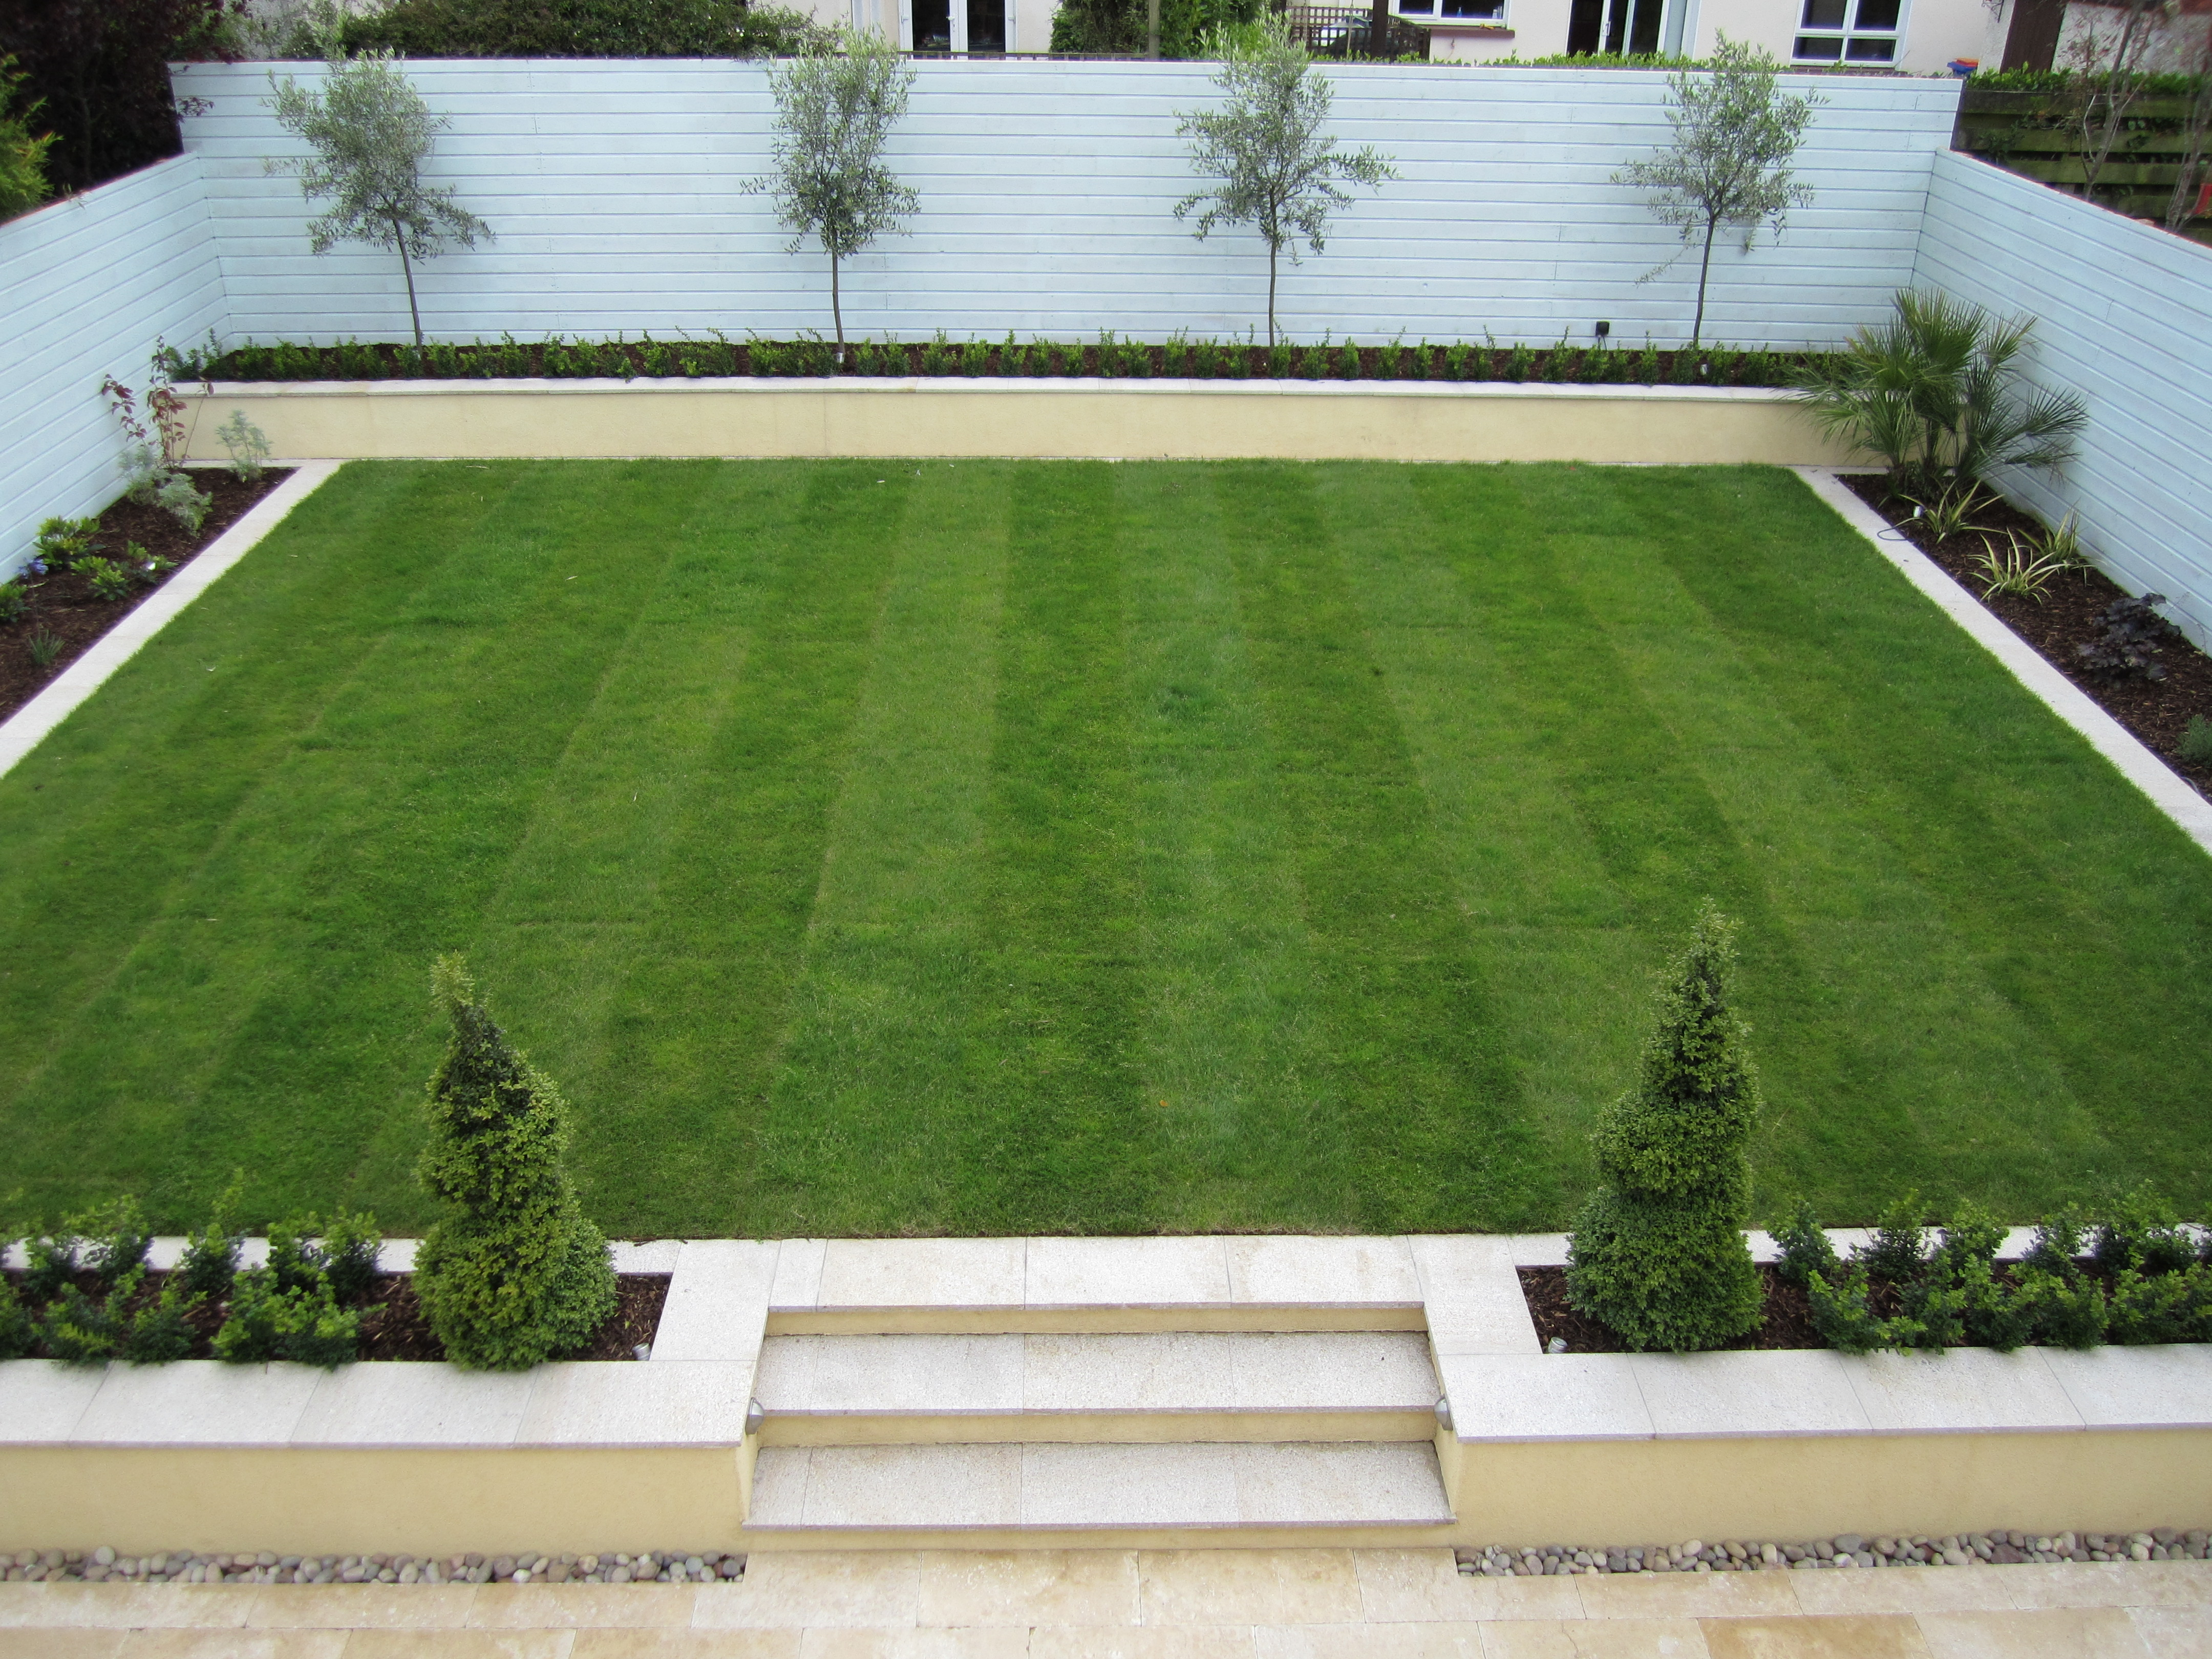 Planting for Garden Designs Dublin, Wicklow - Landscaping.ie on Patio And Grass Garden Ideas id=12799